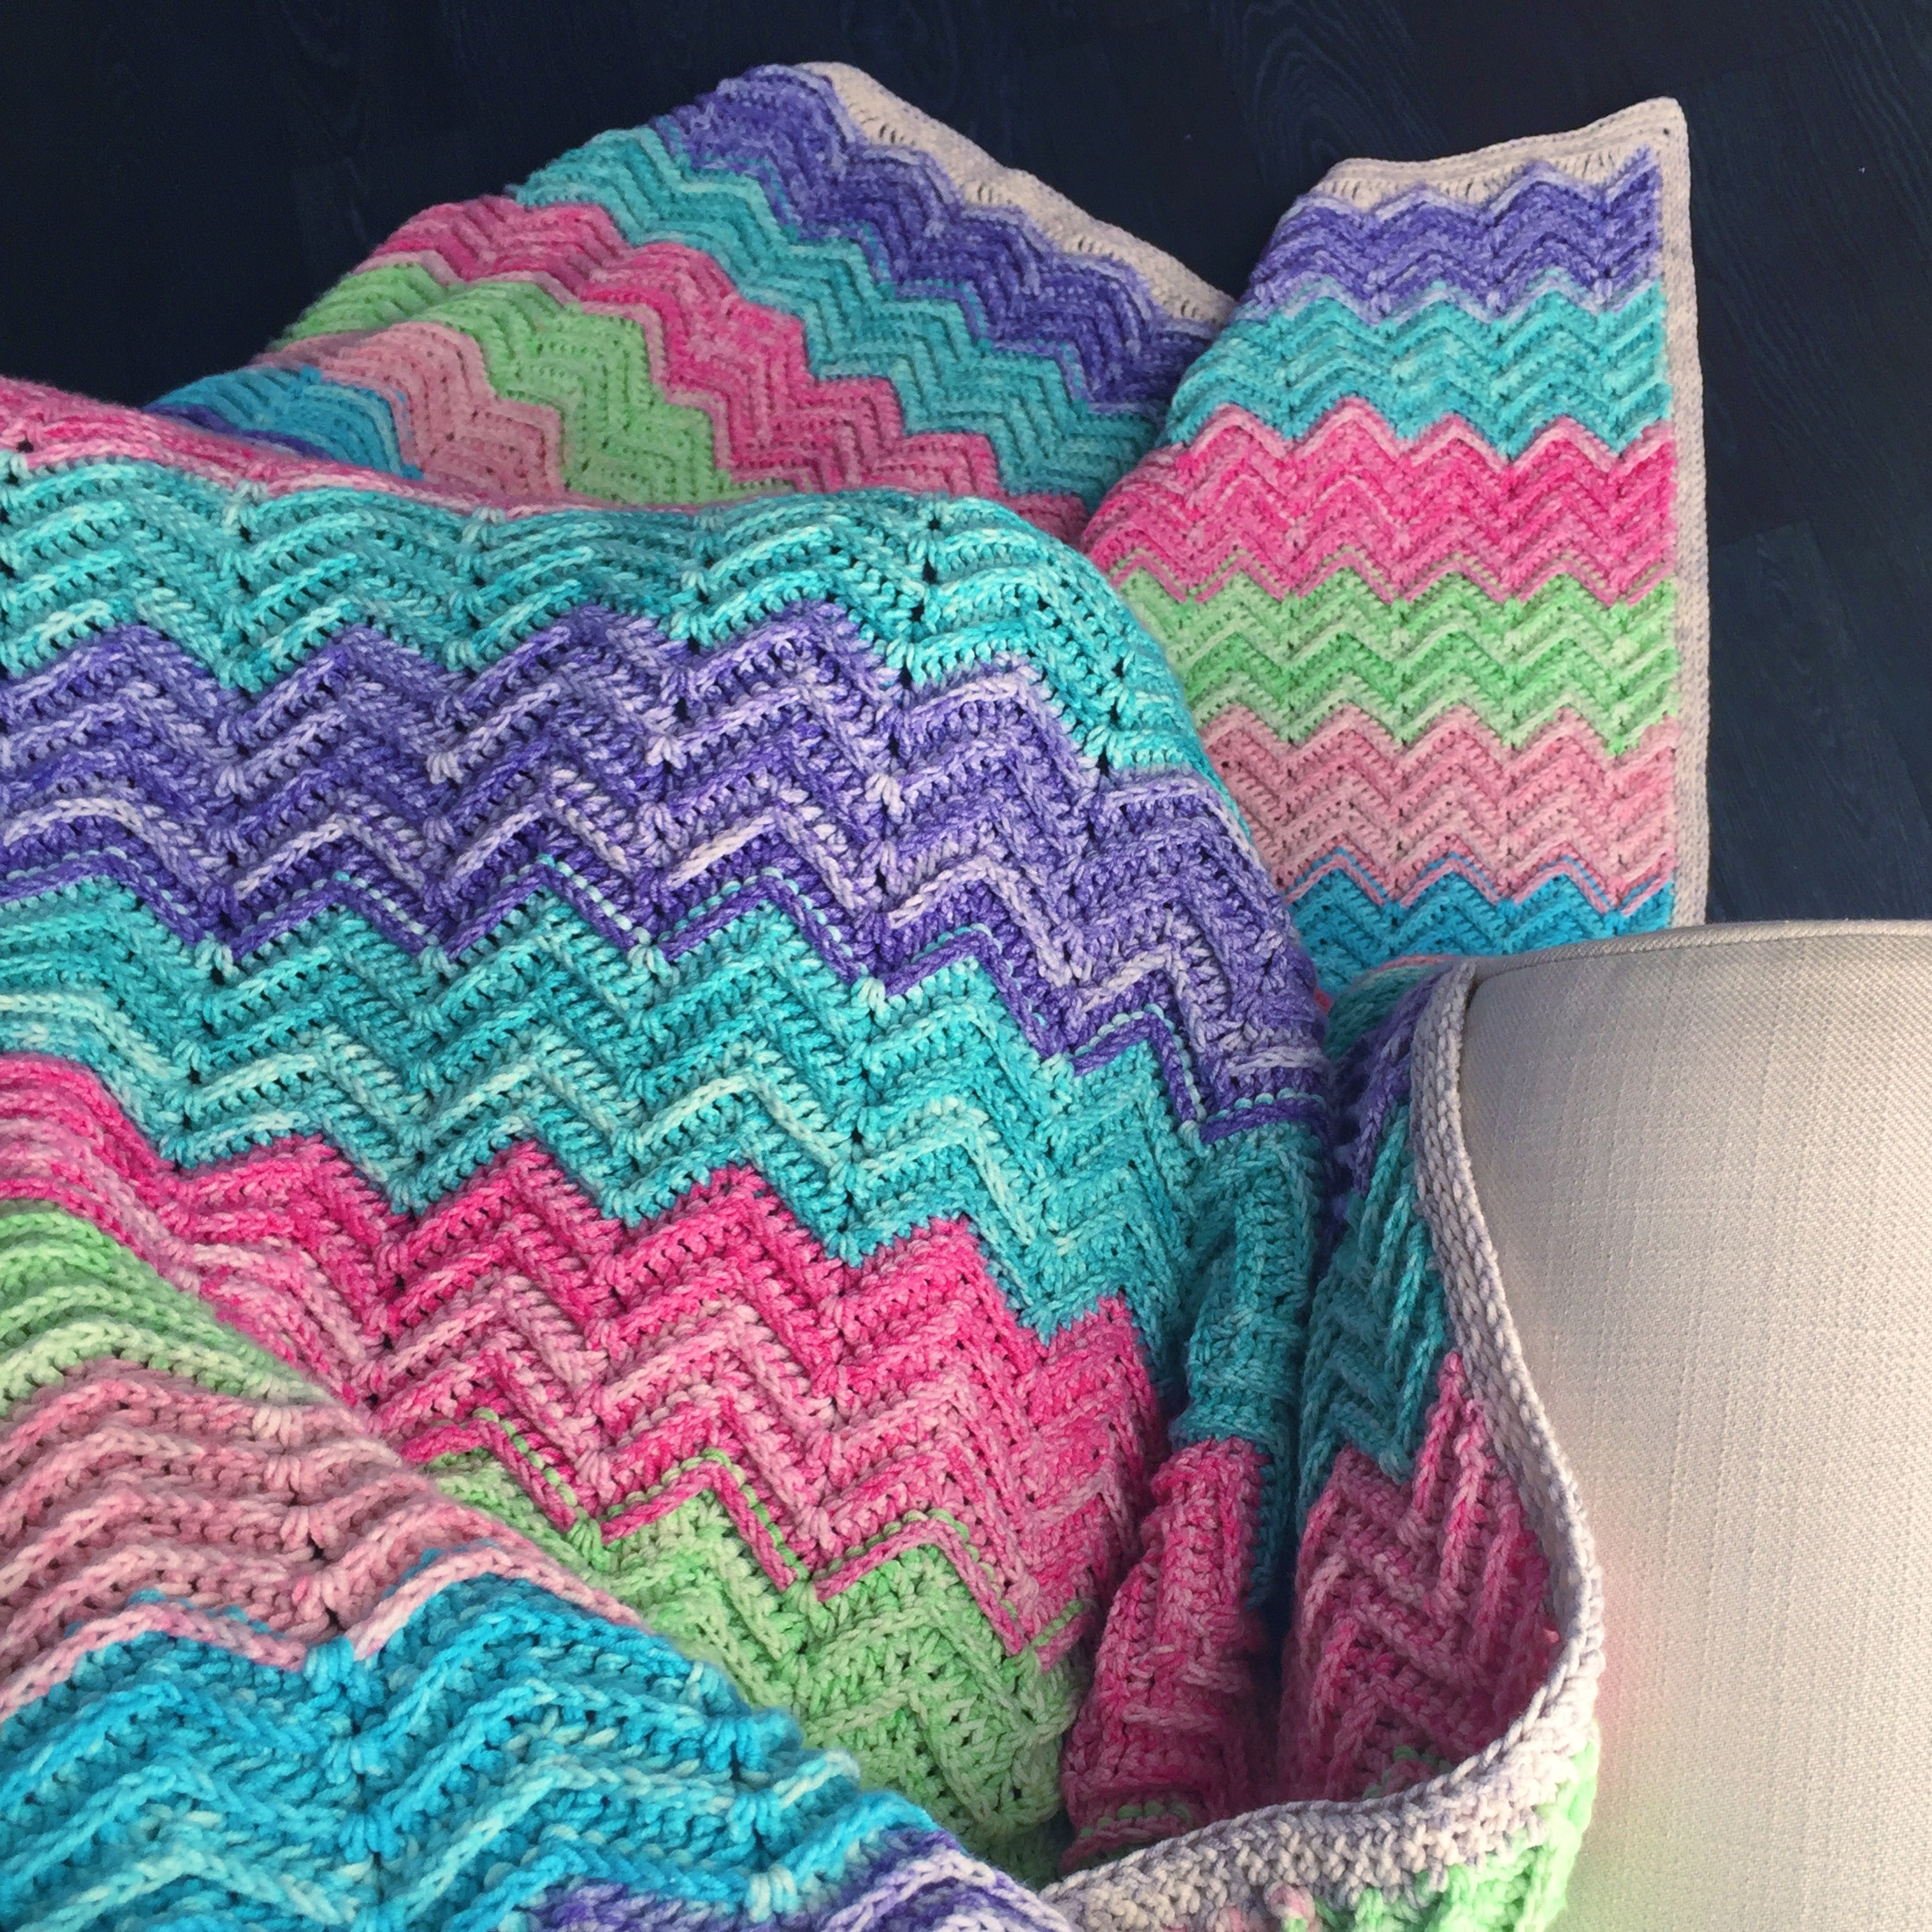 Textured Chevron Blanket, free pattern by Nerissa Muijs